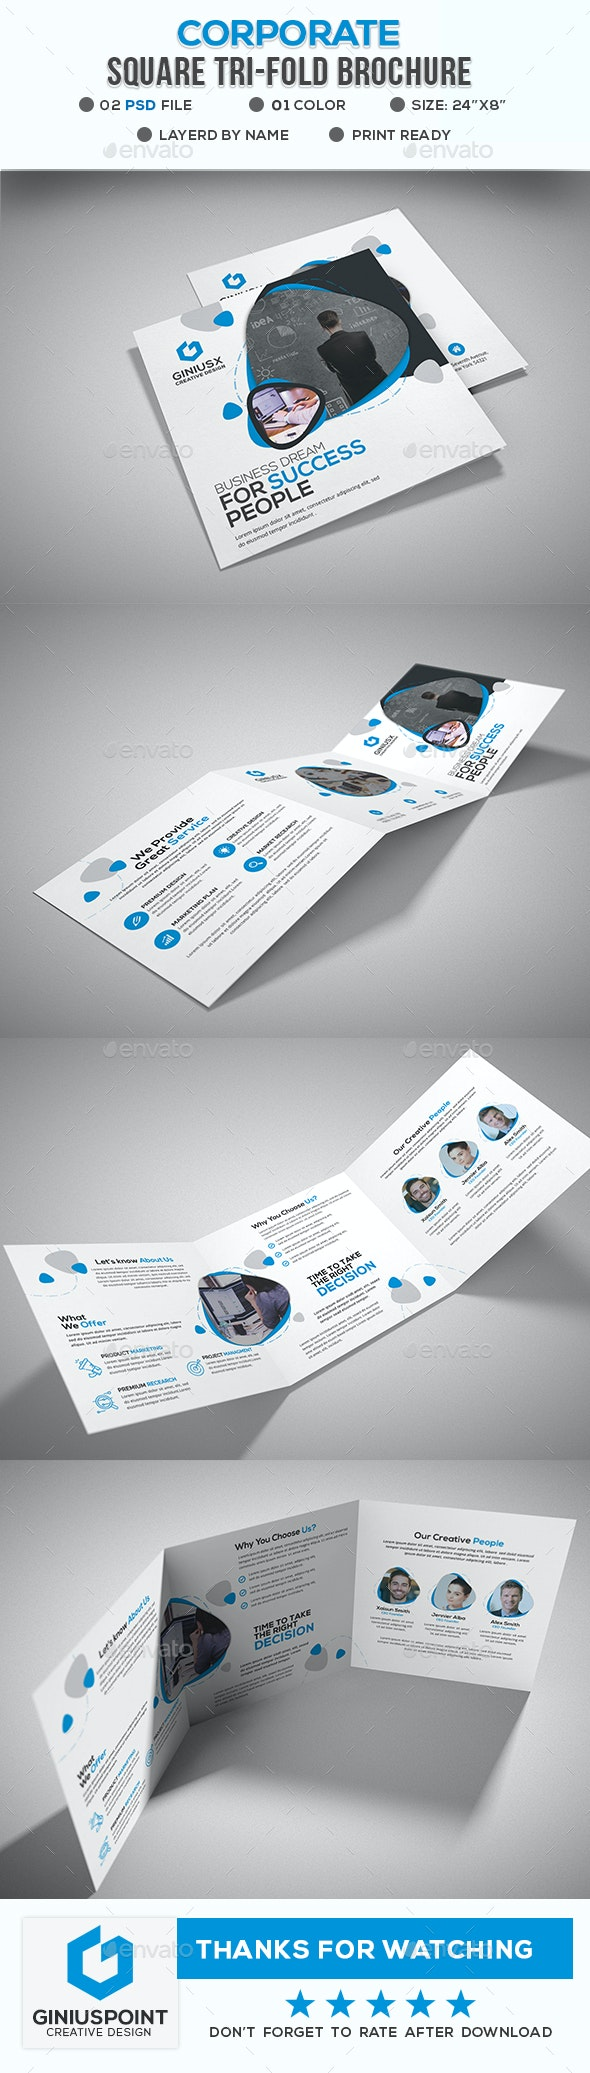 Corporate Square Tri-Fold Brochure - Brochures Print Templates